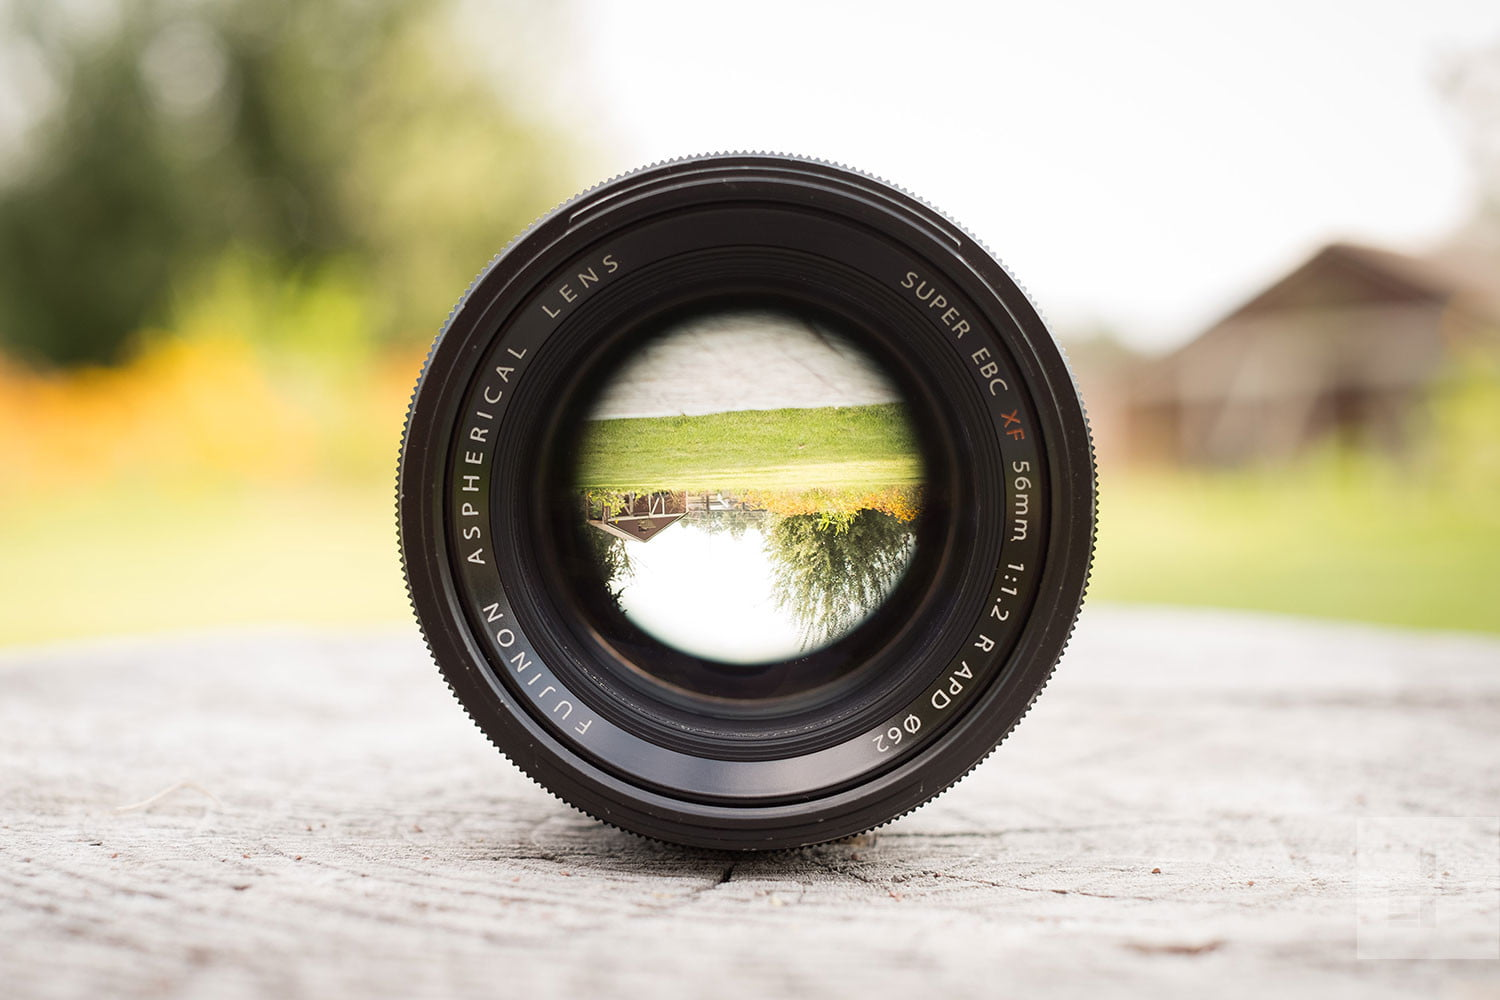 Ditch The Kit How To Choose A Lens For Your Dslr Or Mirrorless Camera Digital Trends